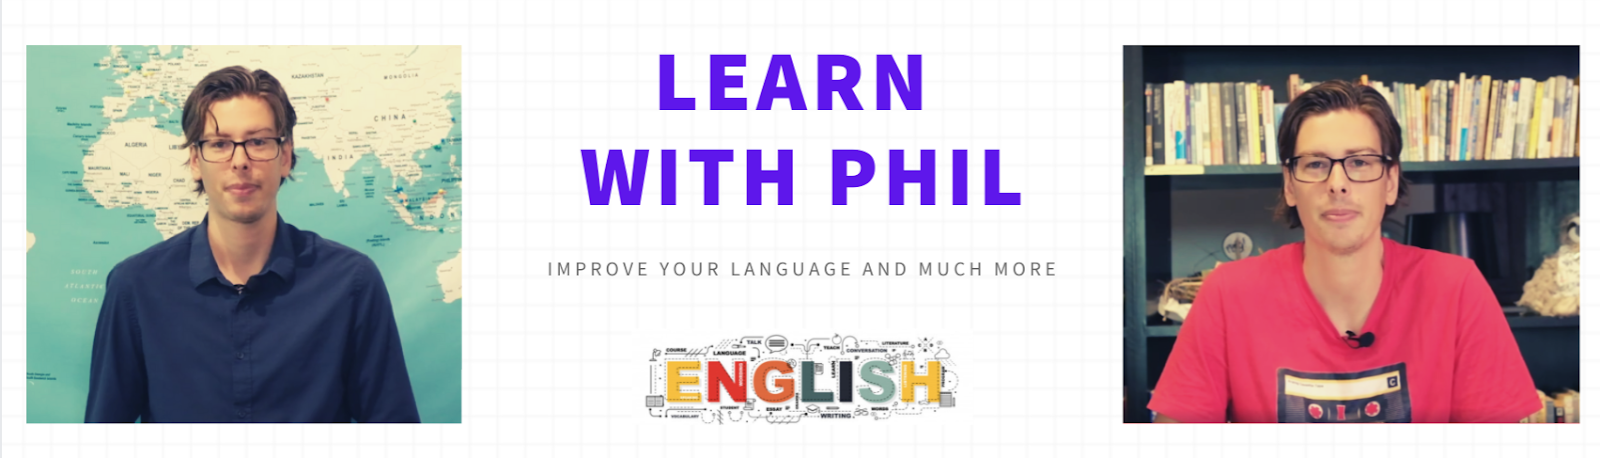 Learn with Phil